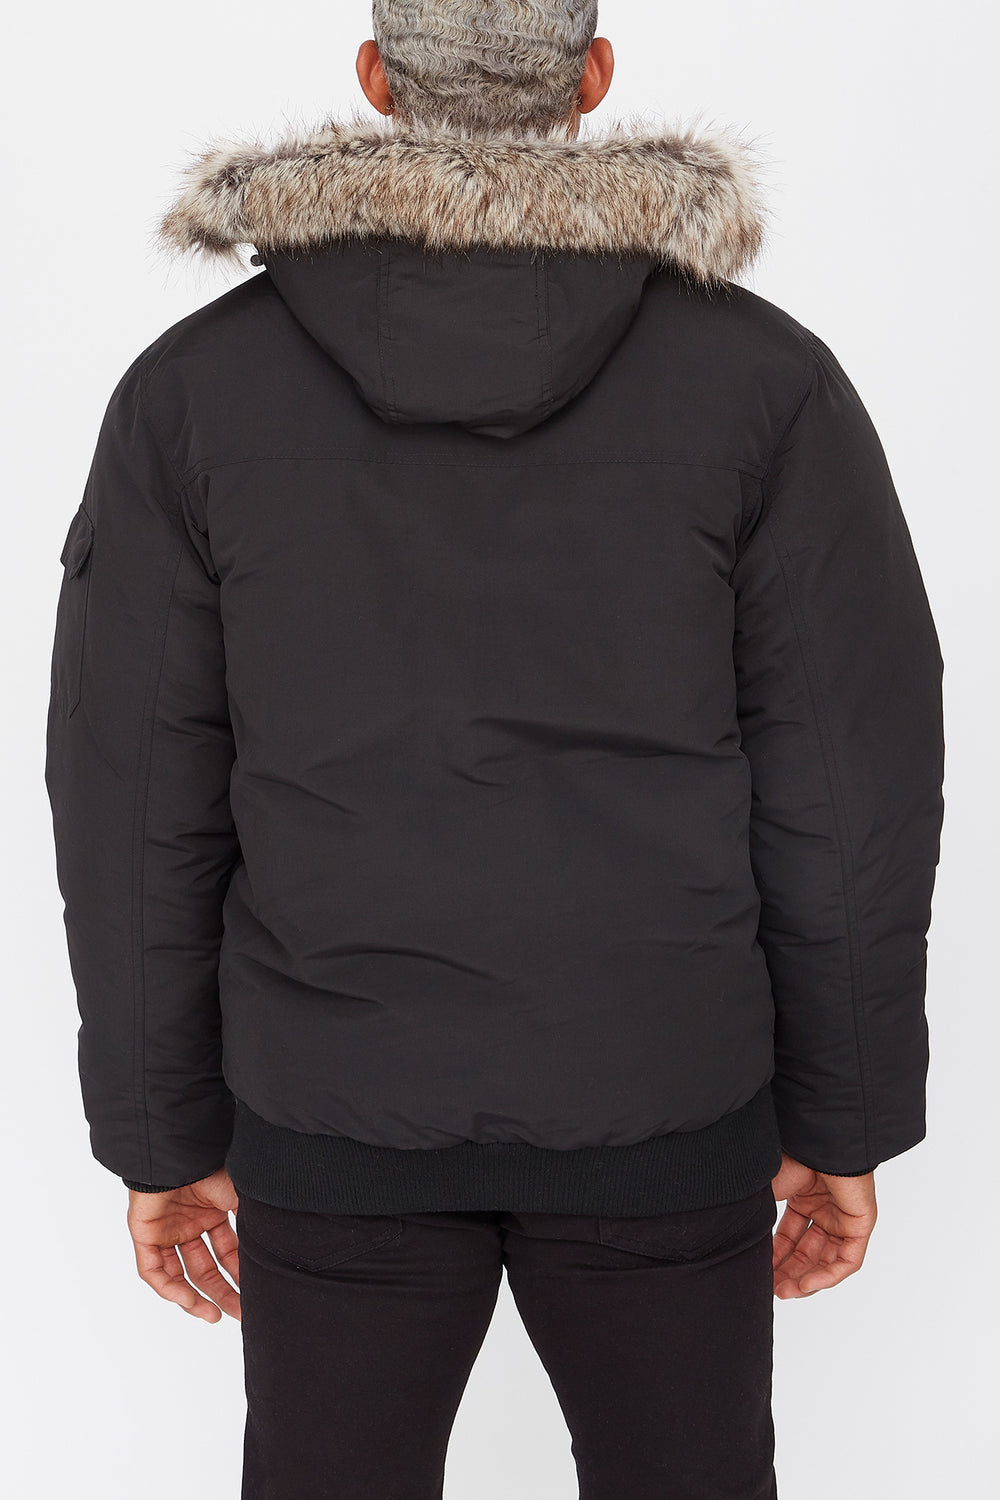 West49 Poly-Fill Bomber Jacket Black